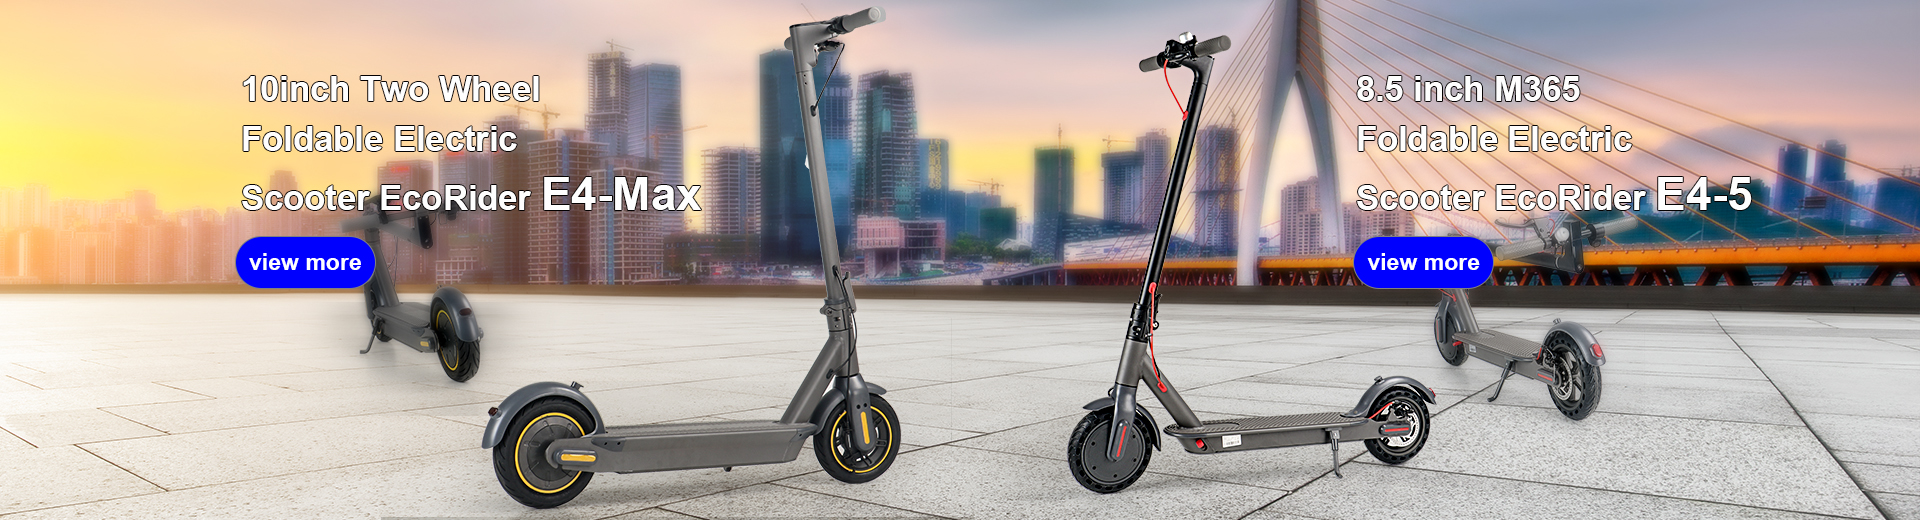 10inch Two Wheel  Foldable Electric  Scooter EcoRider E4-Max